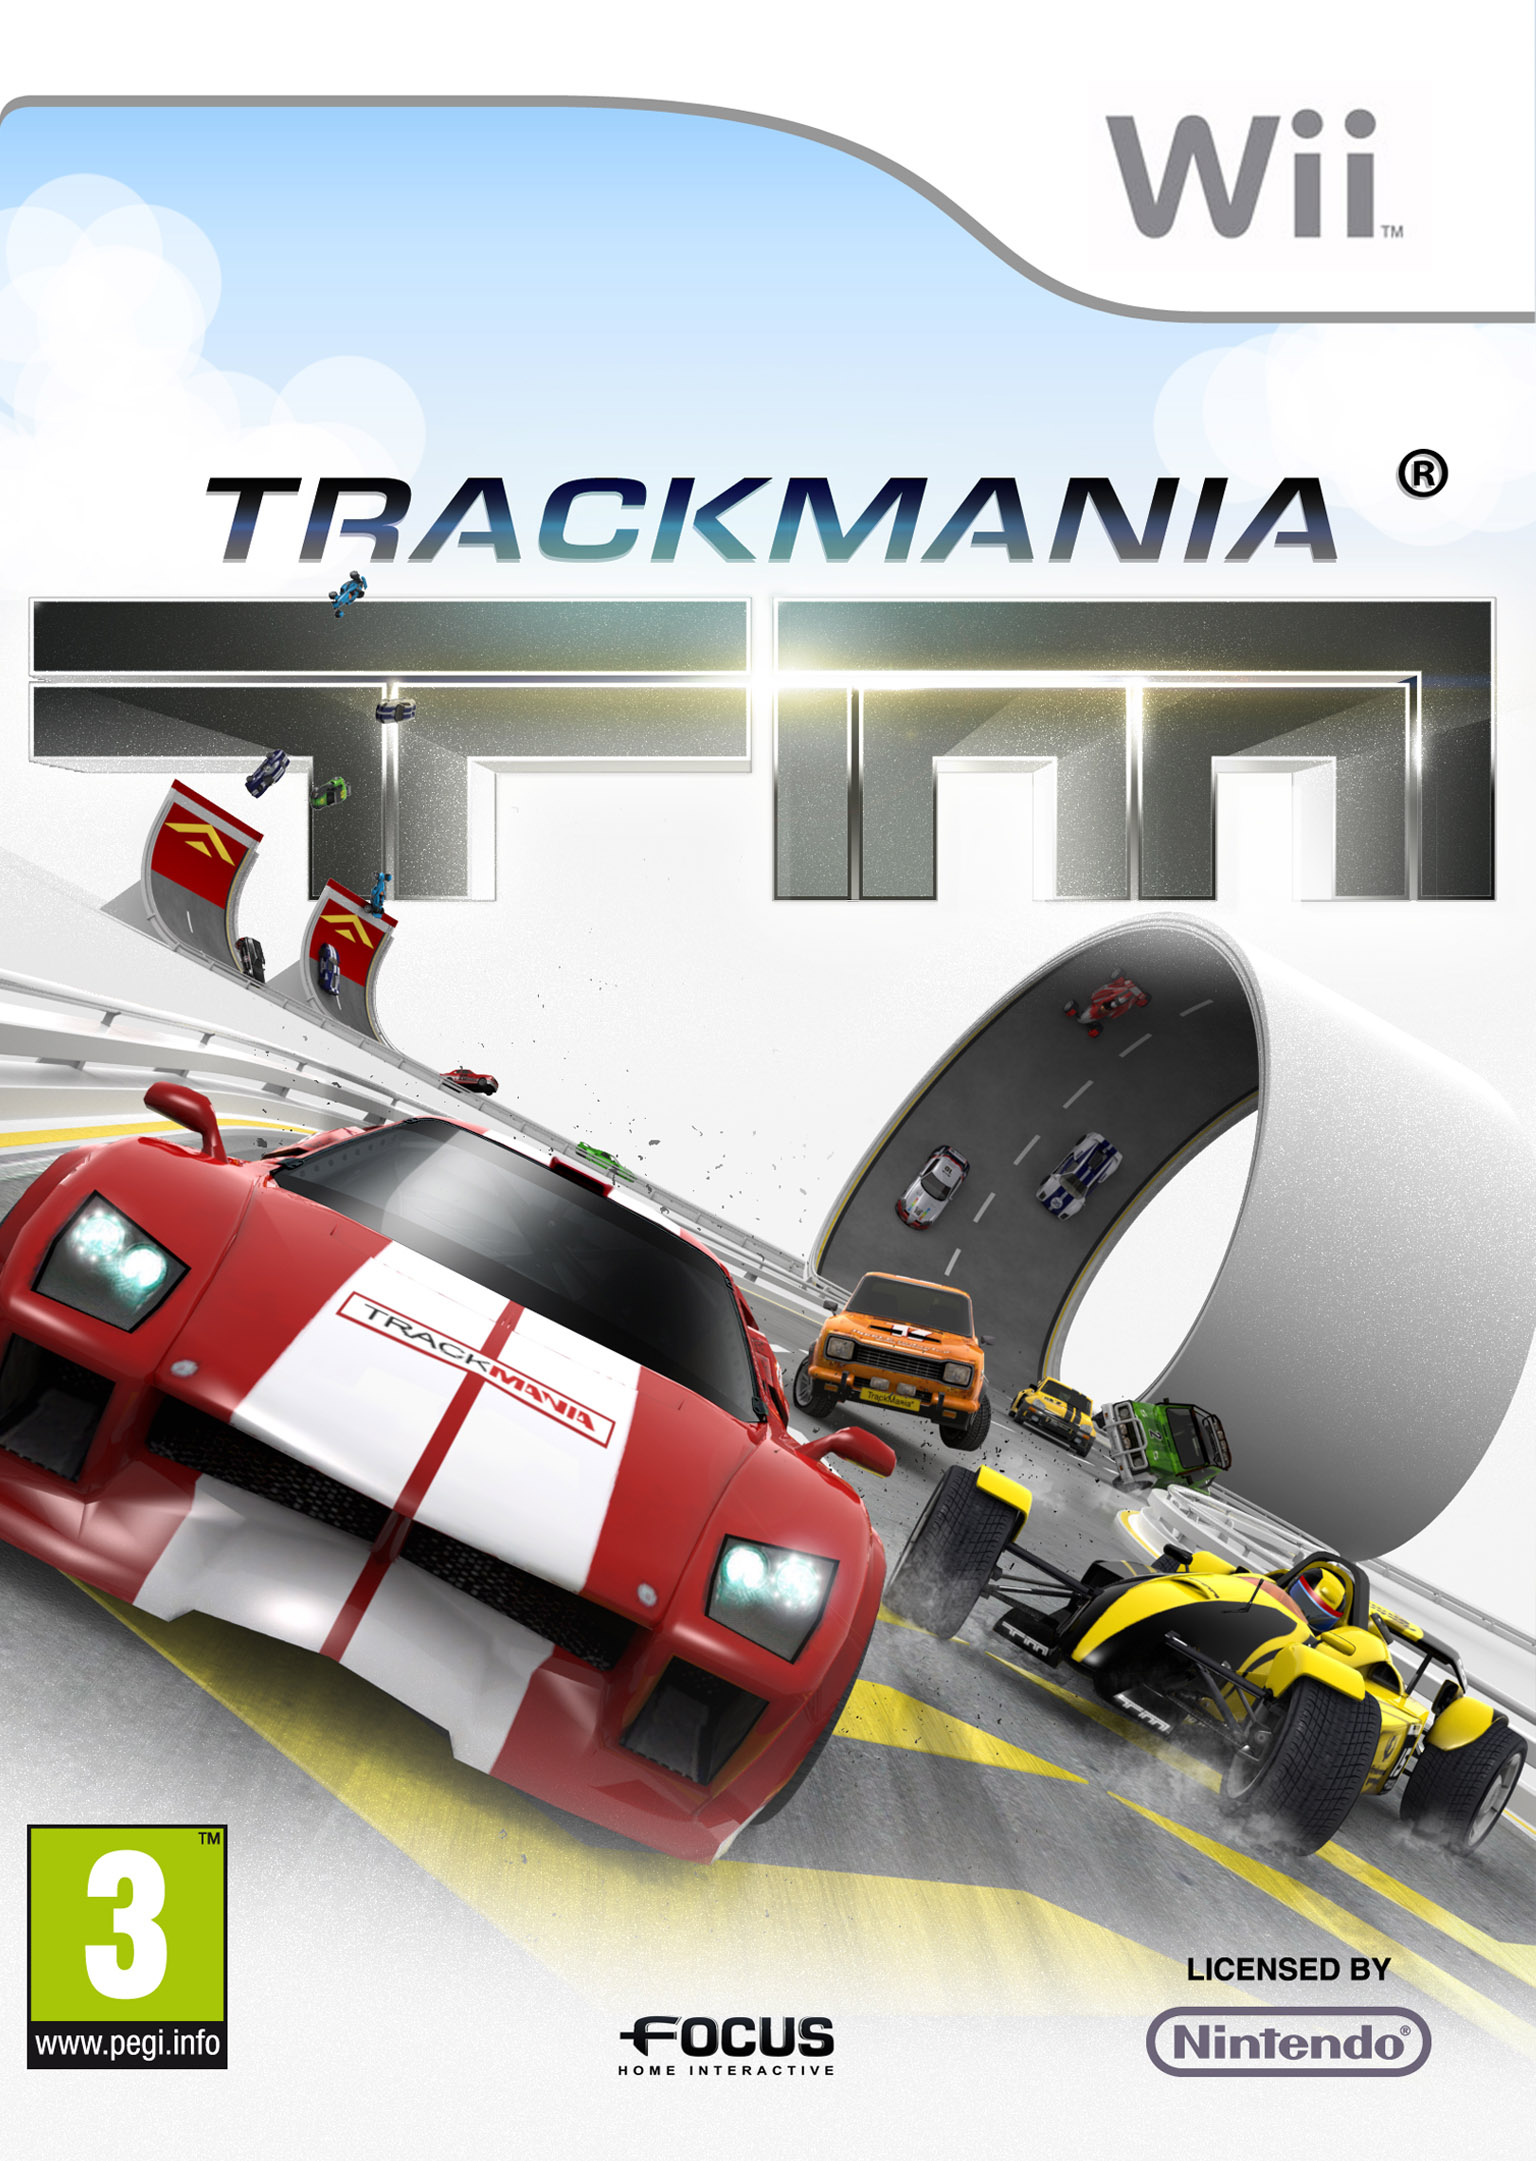 http://download.gameblog.fr/images/jeux/5797/TRACKMANIA_WII_Jaquette.jpg